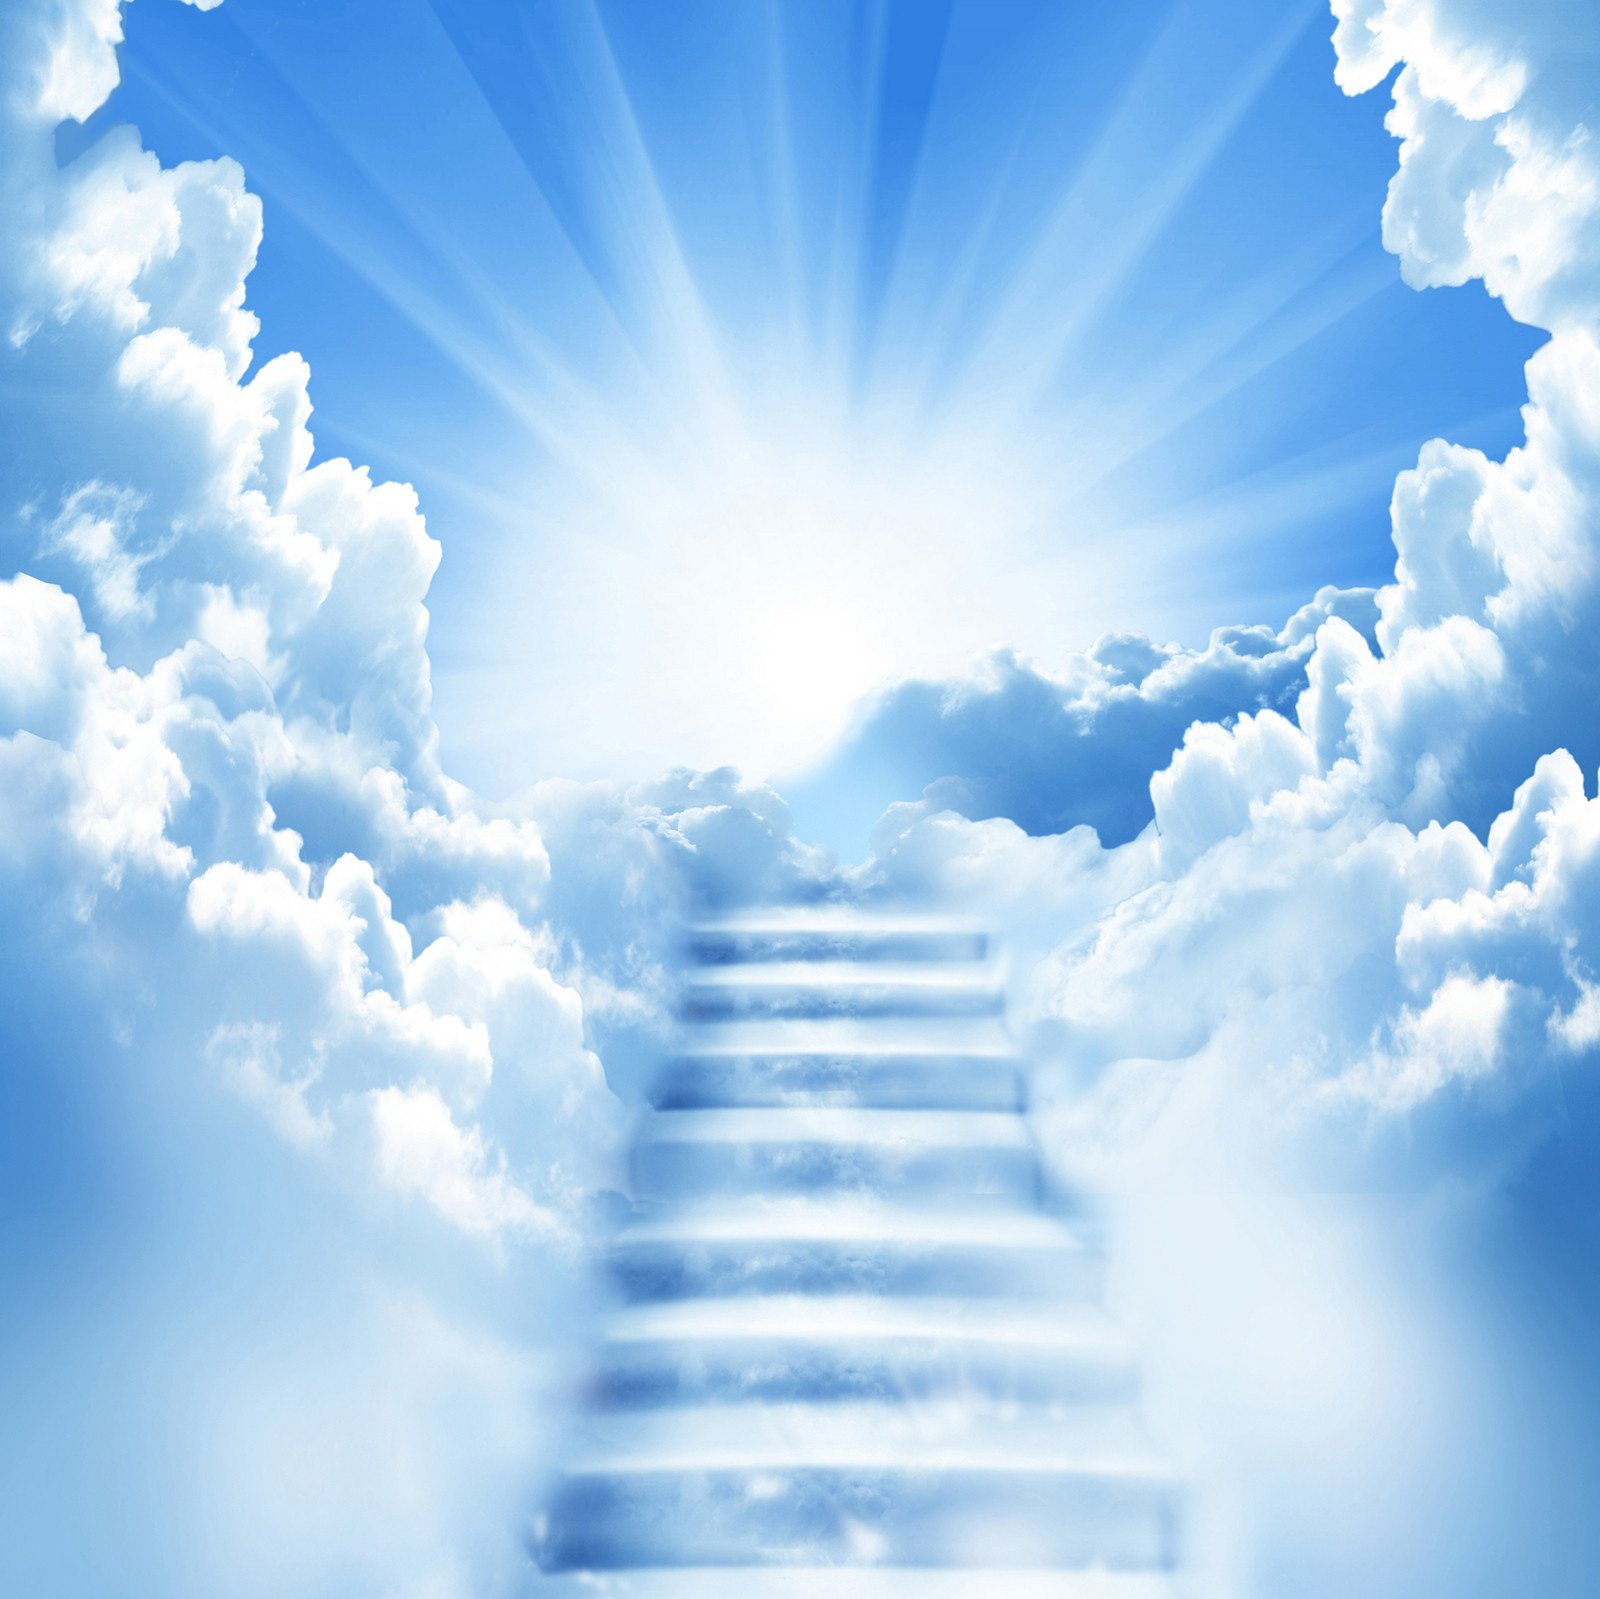 download Funeral Backgrounds Pictures [1600x1599] for your 1600x1599